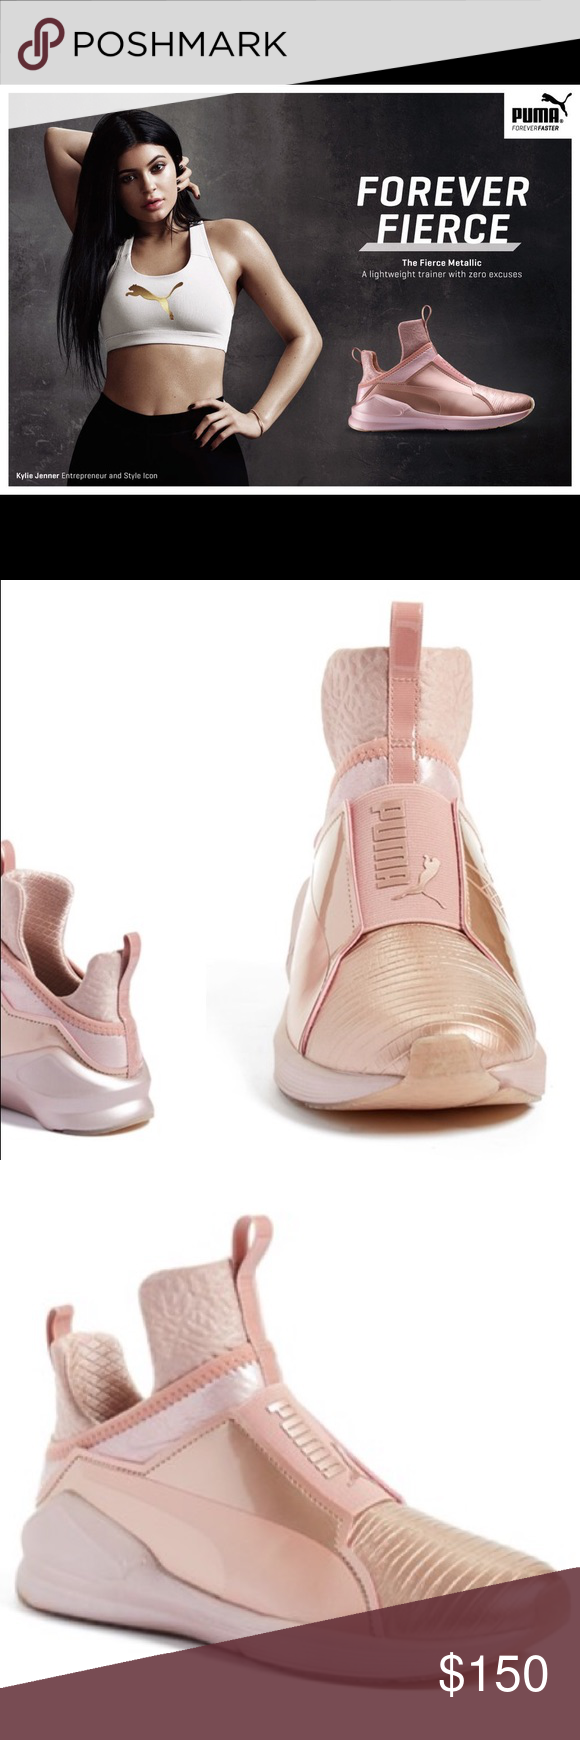 9848cc954d7a PUMA Fierce Kylie Jenner Sneaker ROSEGOLD Brand new in box. In  collaboration with Rihanna s Fenty